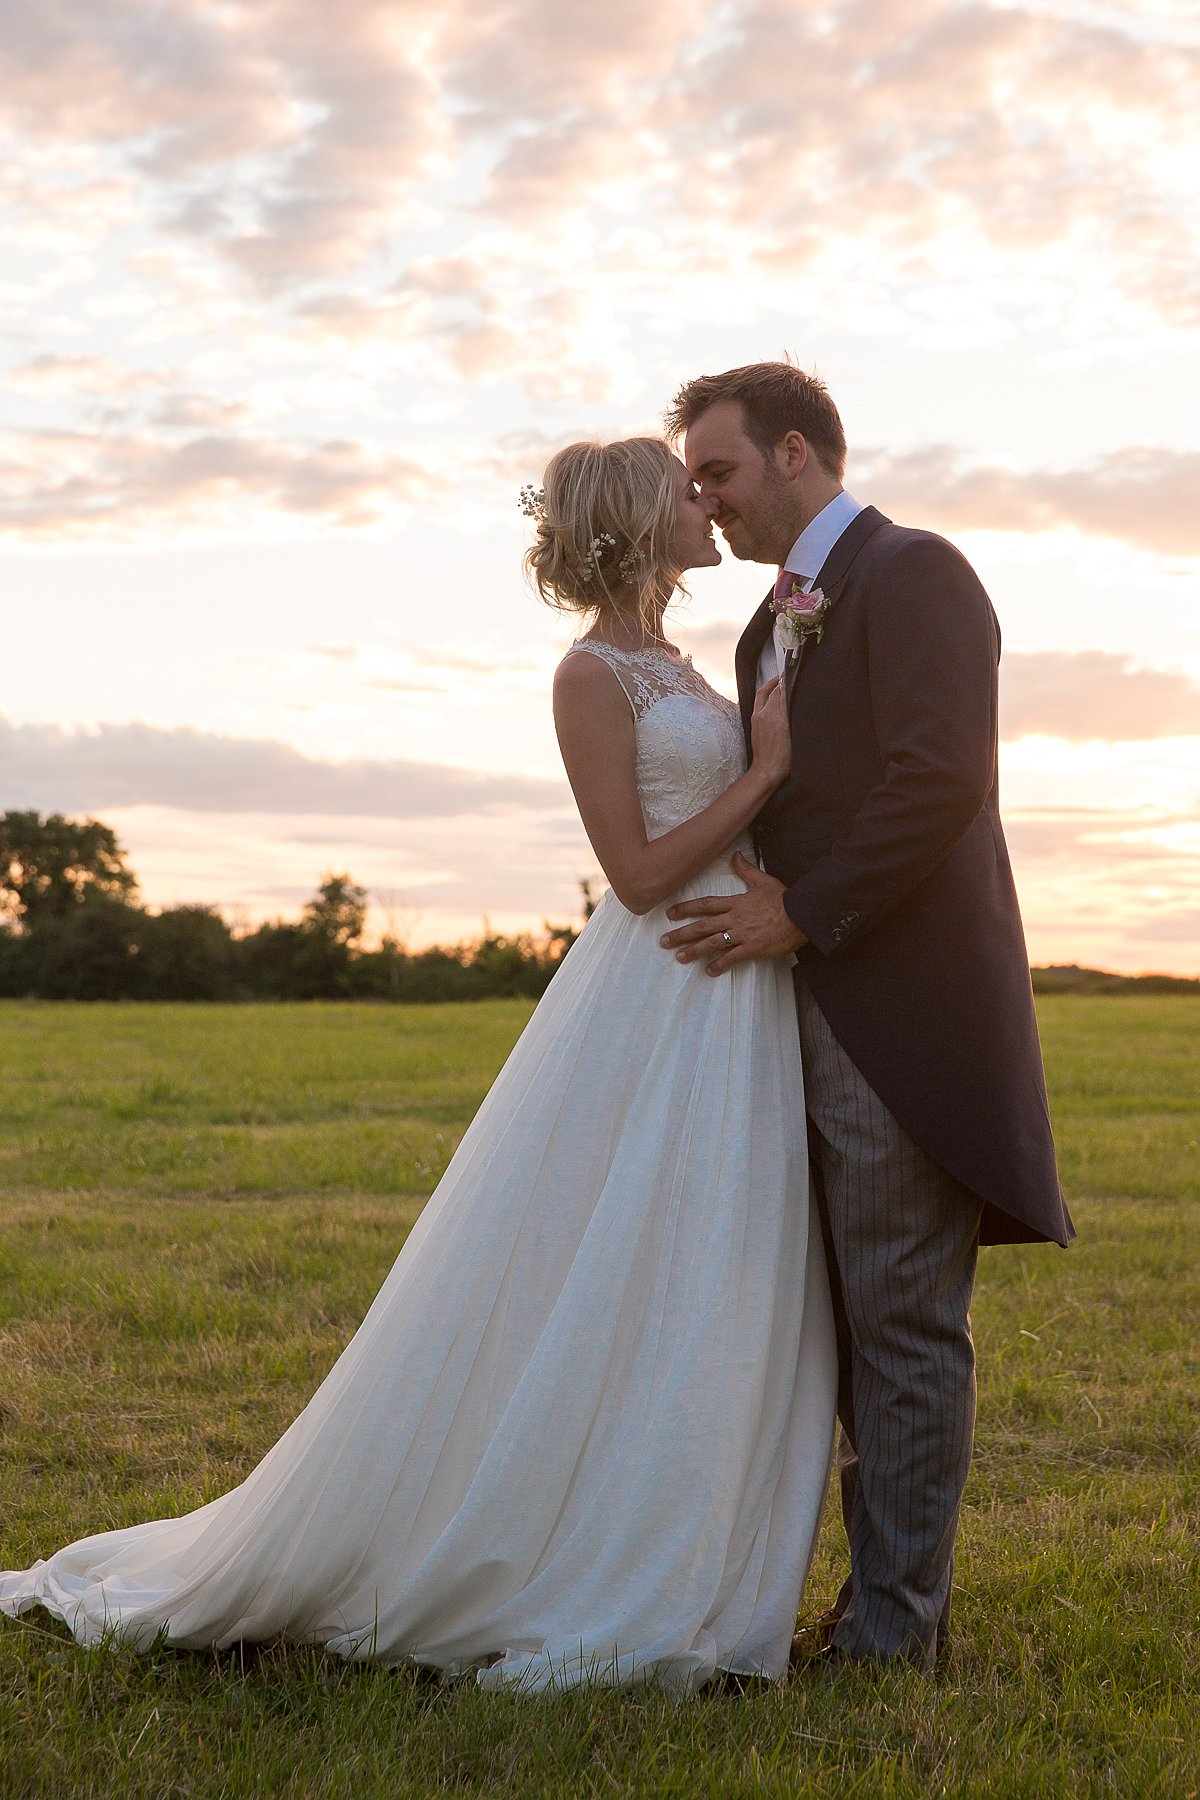 Bride and groom kiss at sunset at Lyveden New Bield National Trust wedding by Mckenzie brown photography